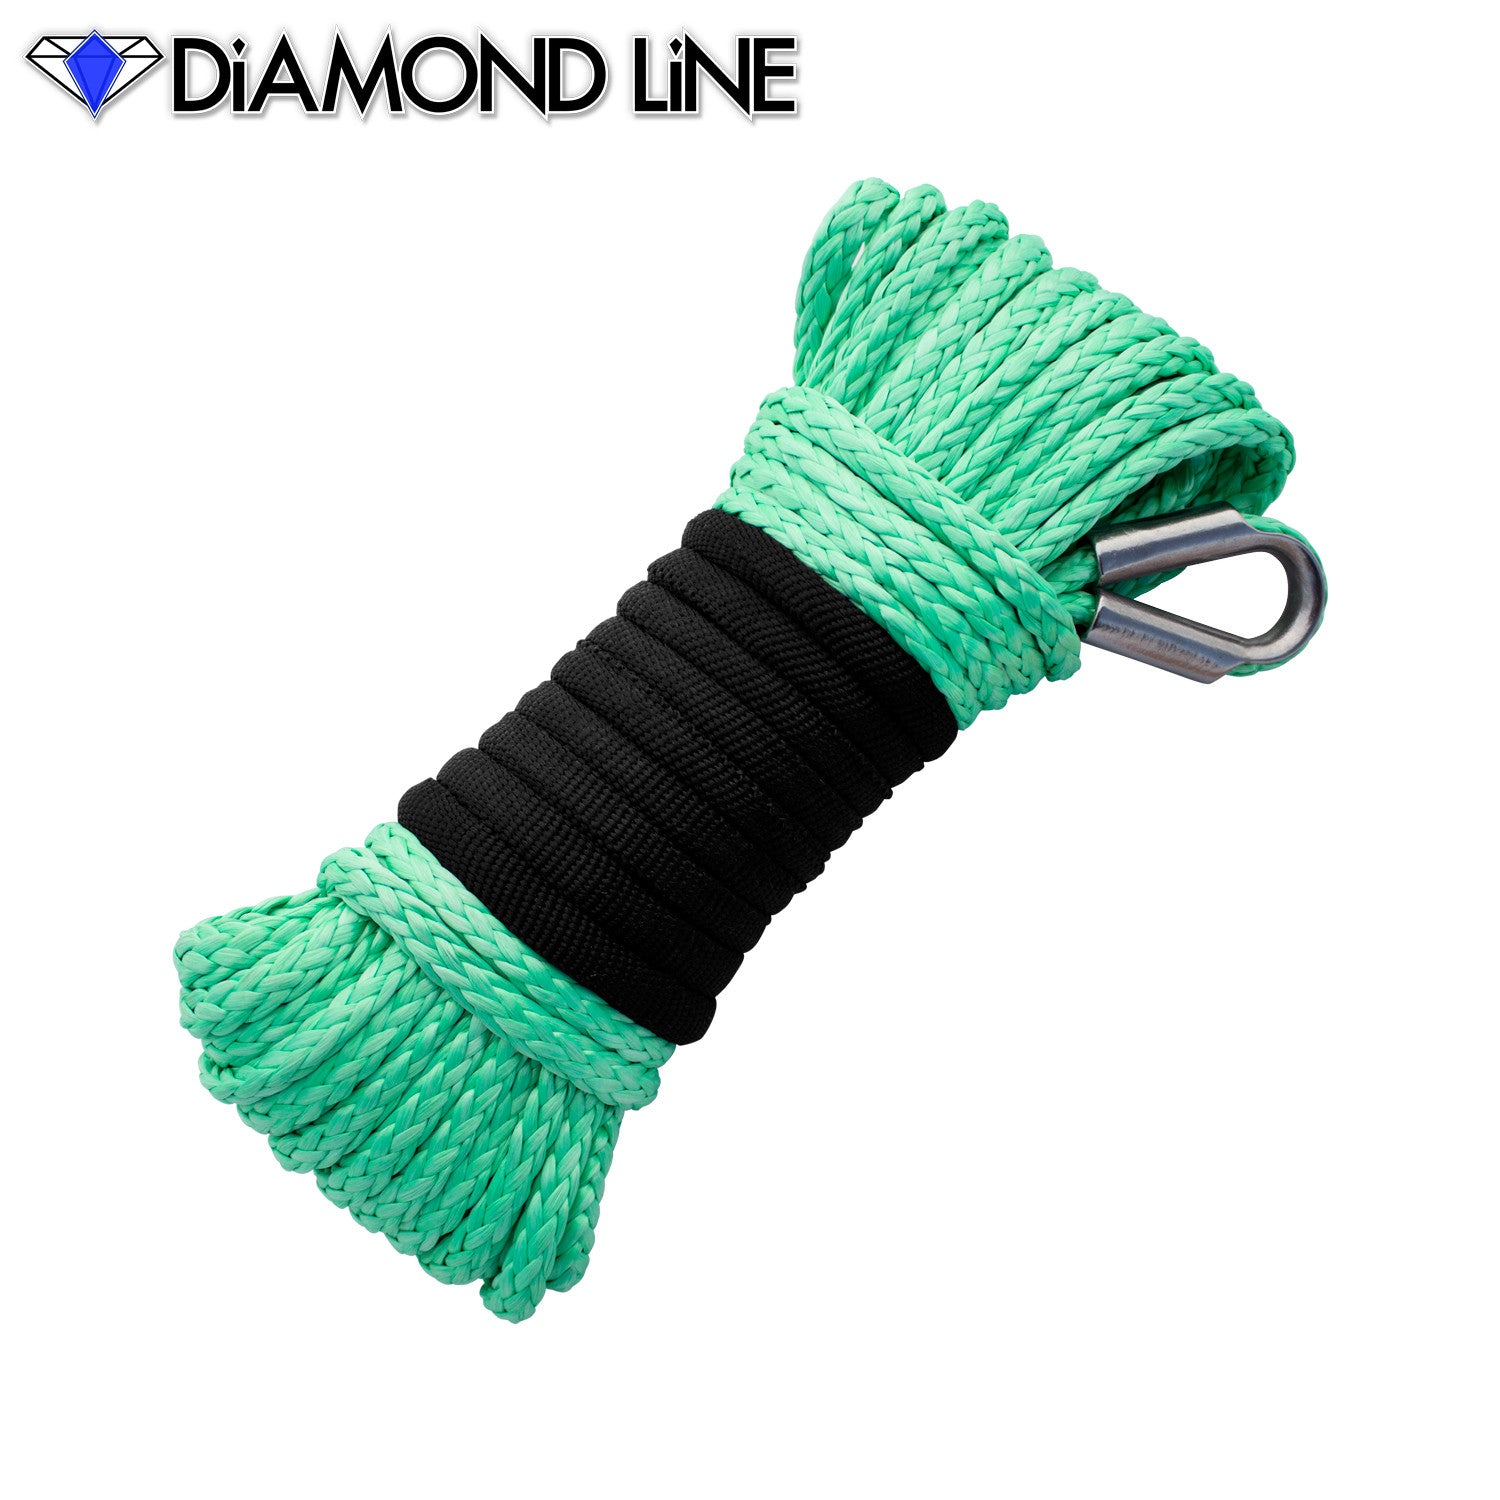 "3/16"" x 50' Diamond Line Winch Rope Mainline - Teal Green."